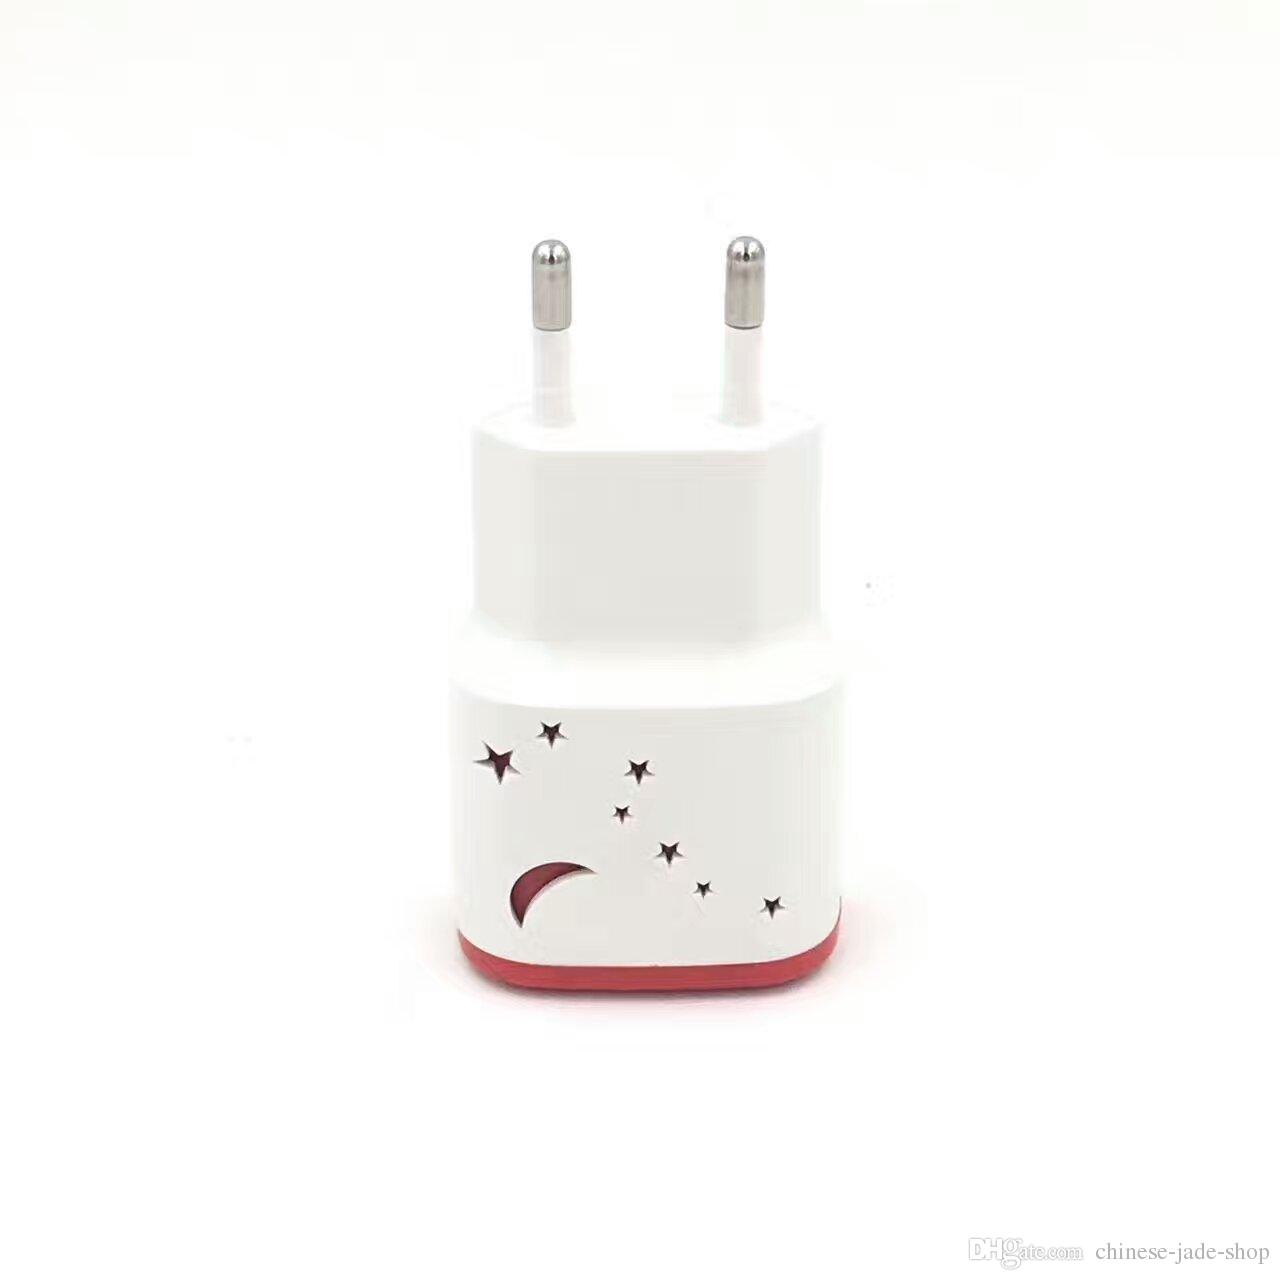 Big Dipper Pattern with Led 2 USB Ports 5V 1.0A Real Wall charger Adapter for Smart phone